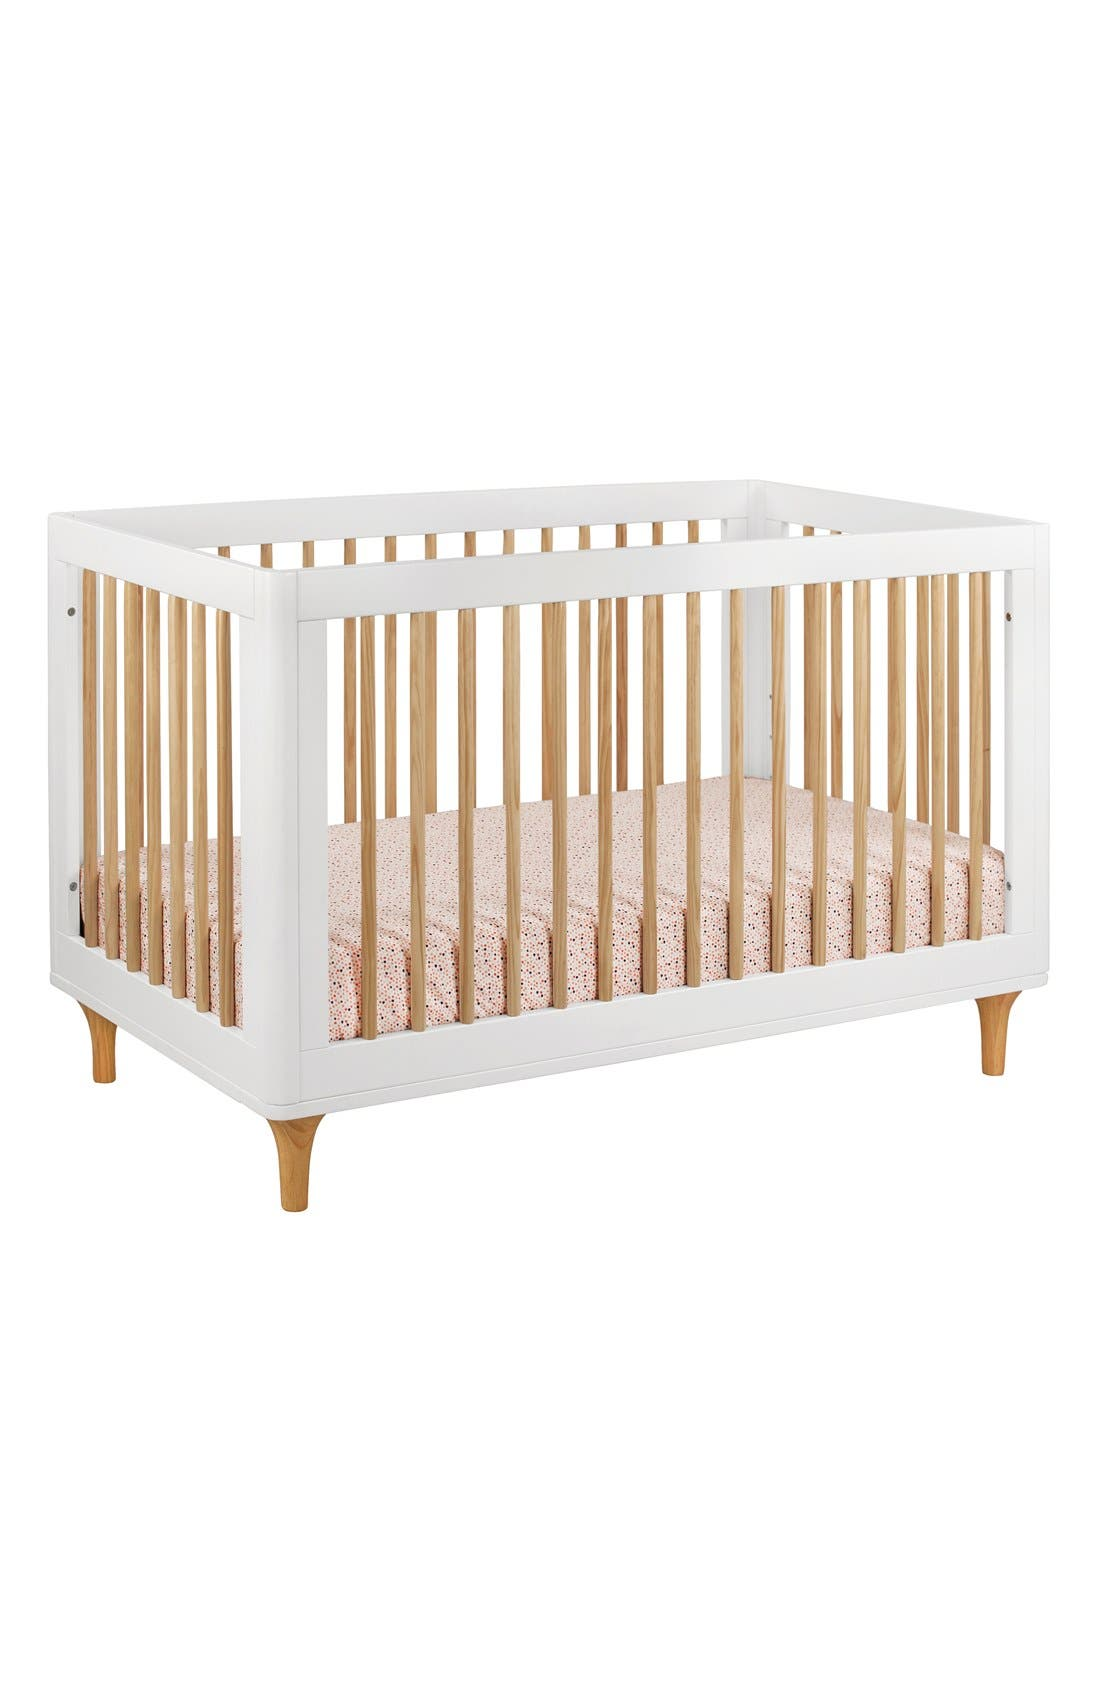 'Lolly' 3-in-1 Convertible Crib,                             Main thumbnail 1, color,                             250